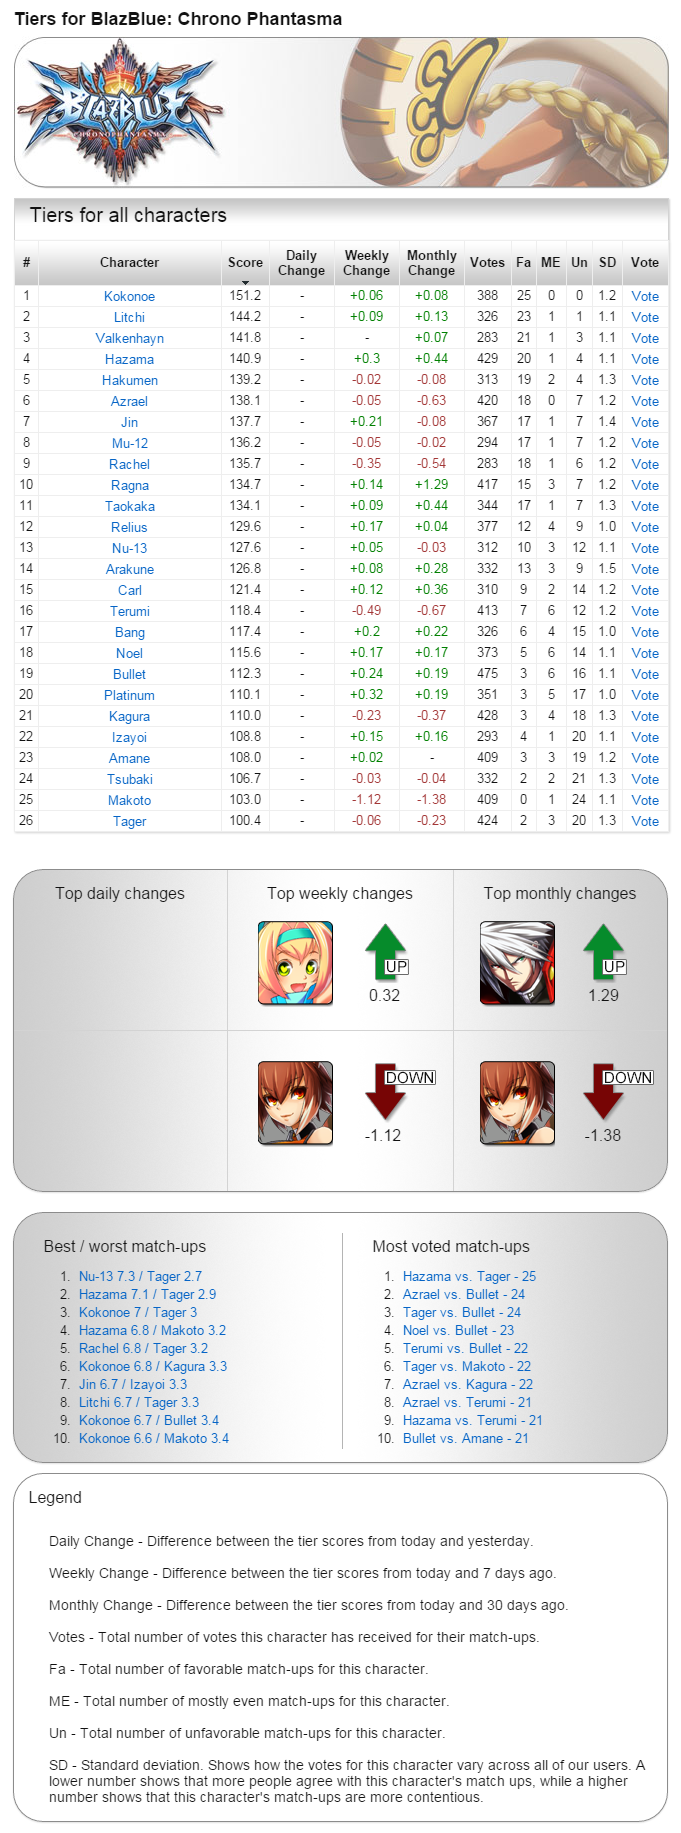 Archived tiers for BlazBlue: Chrono Phantasma - Tiers Screenshot -  July 7th, 2015